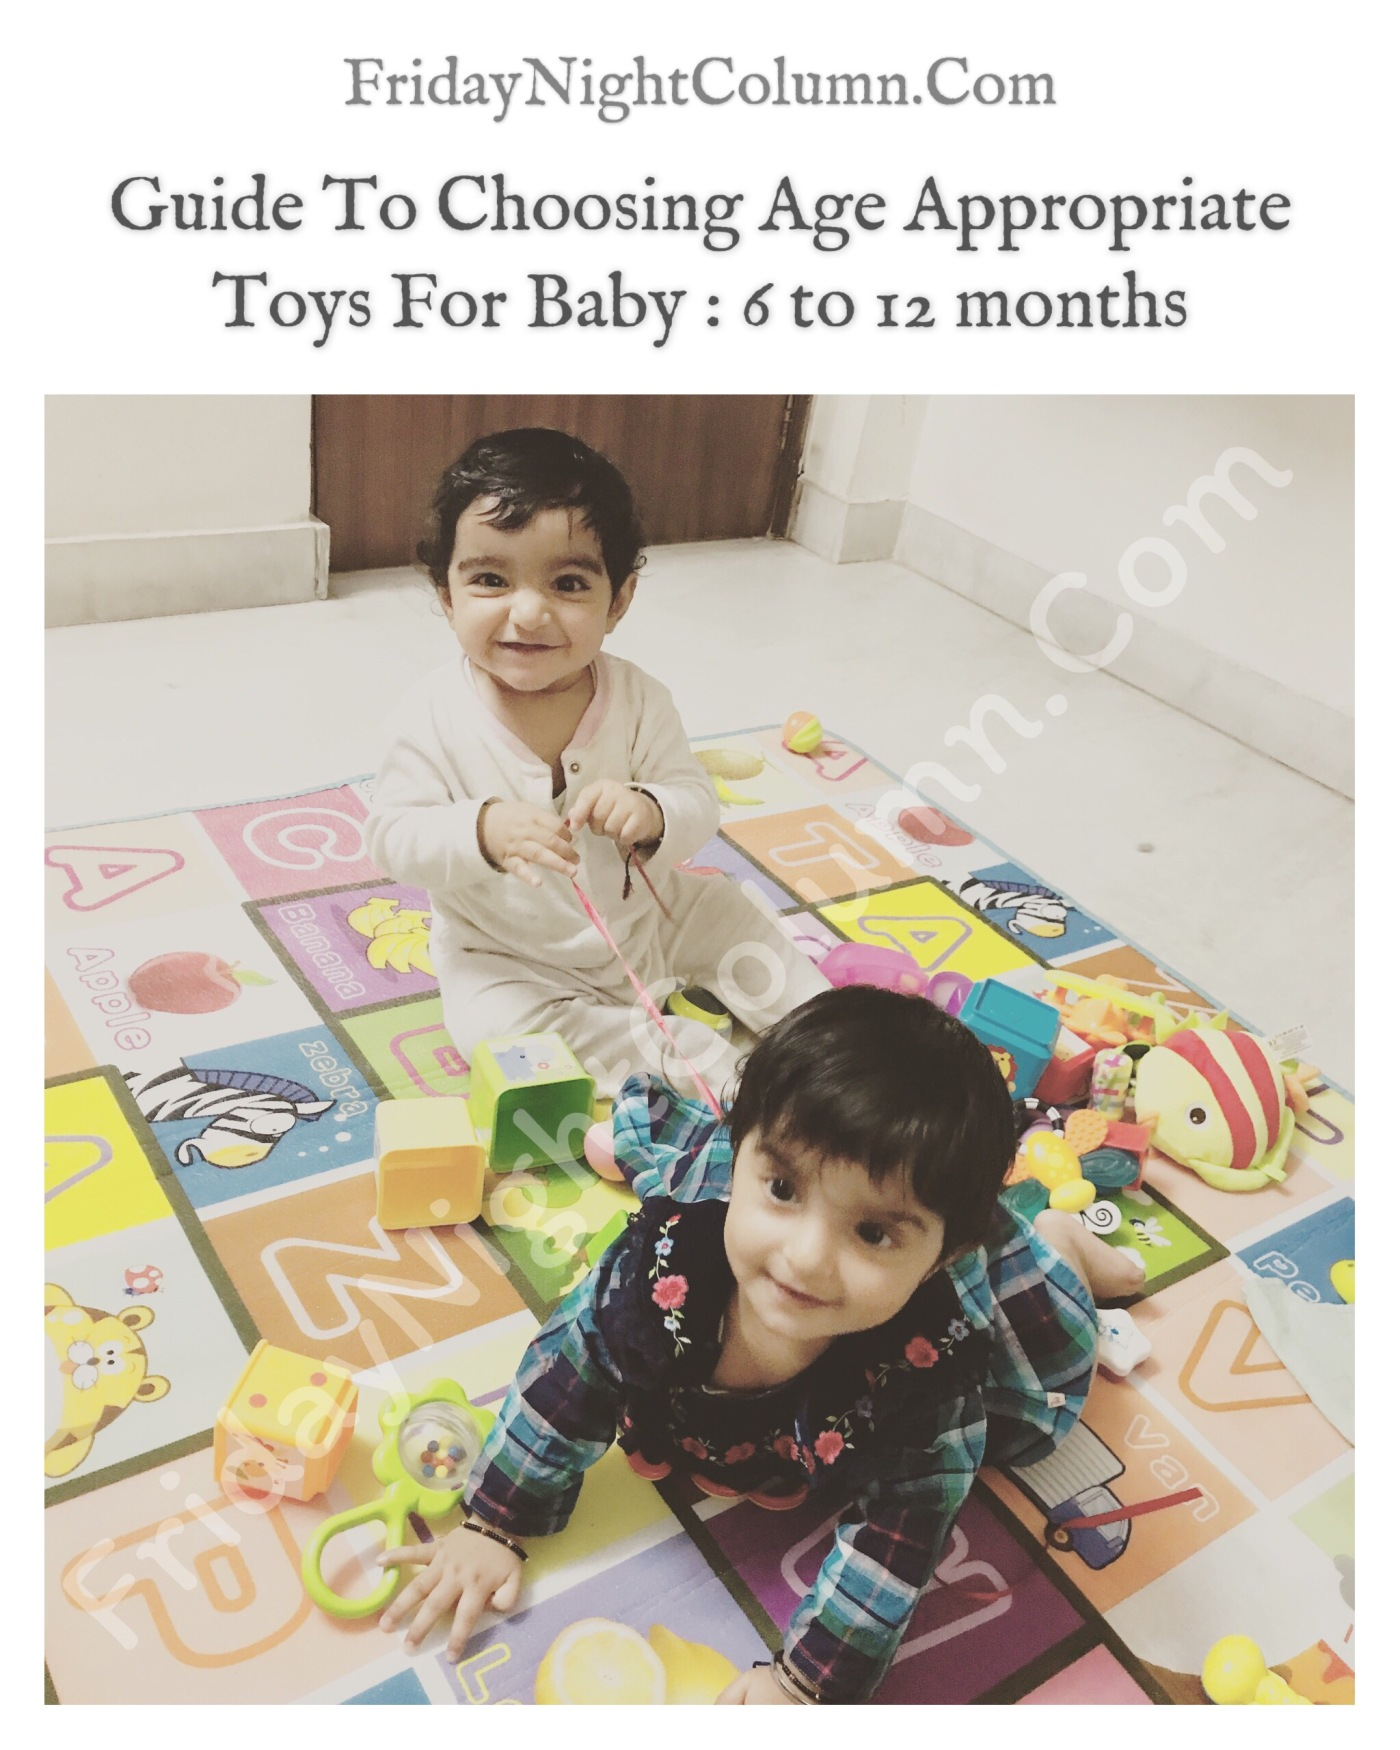 Toys For Age 12 : Guide to choosing age appropriate toys for baby